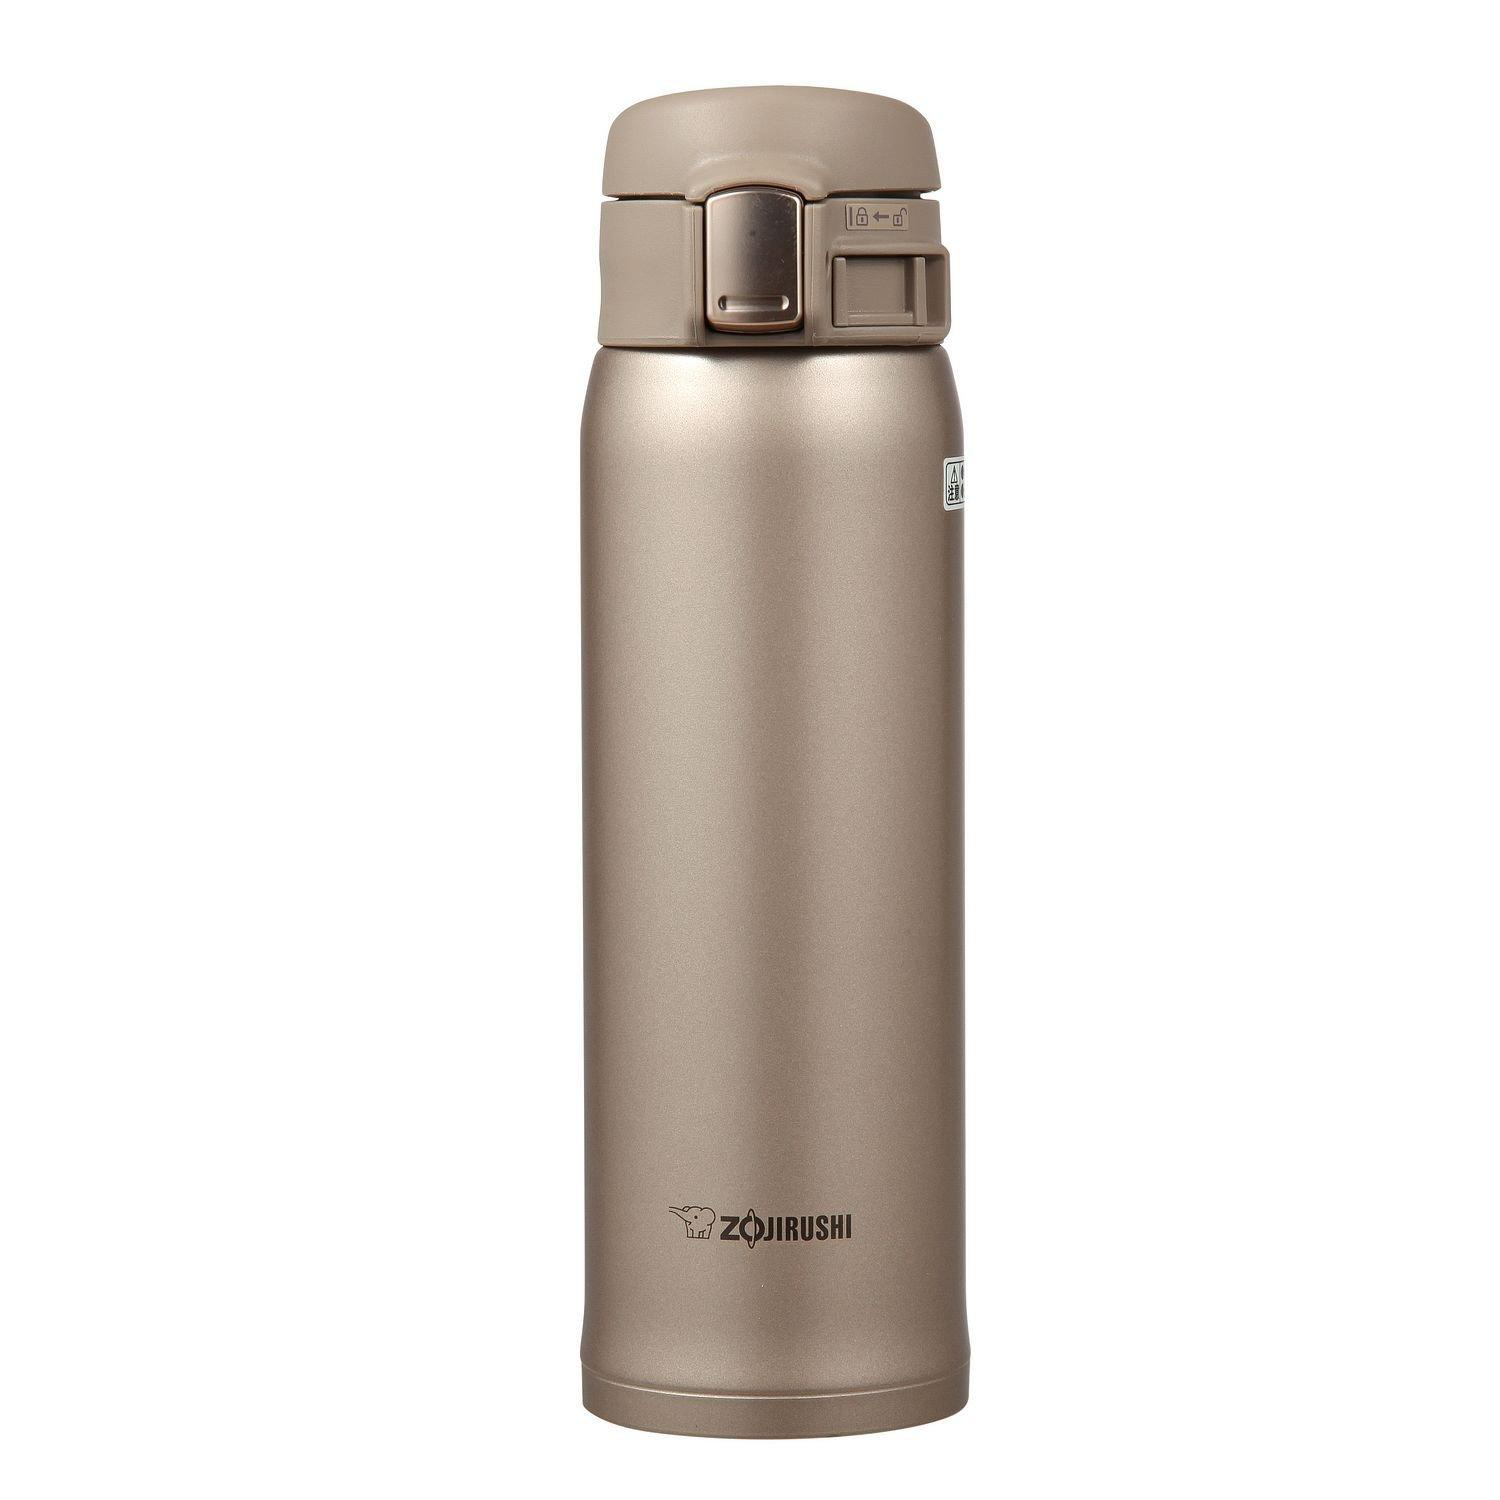 Zojirushi SM-SA48-NM Stainless Steel Mug @ Amazon